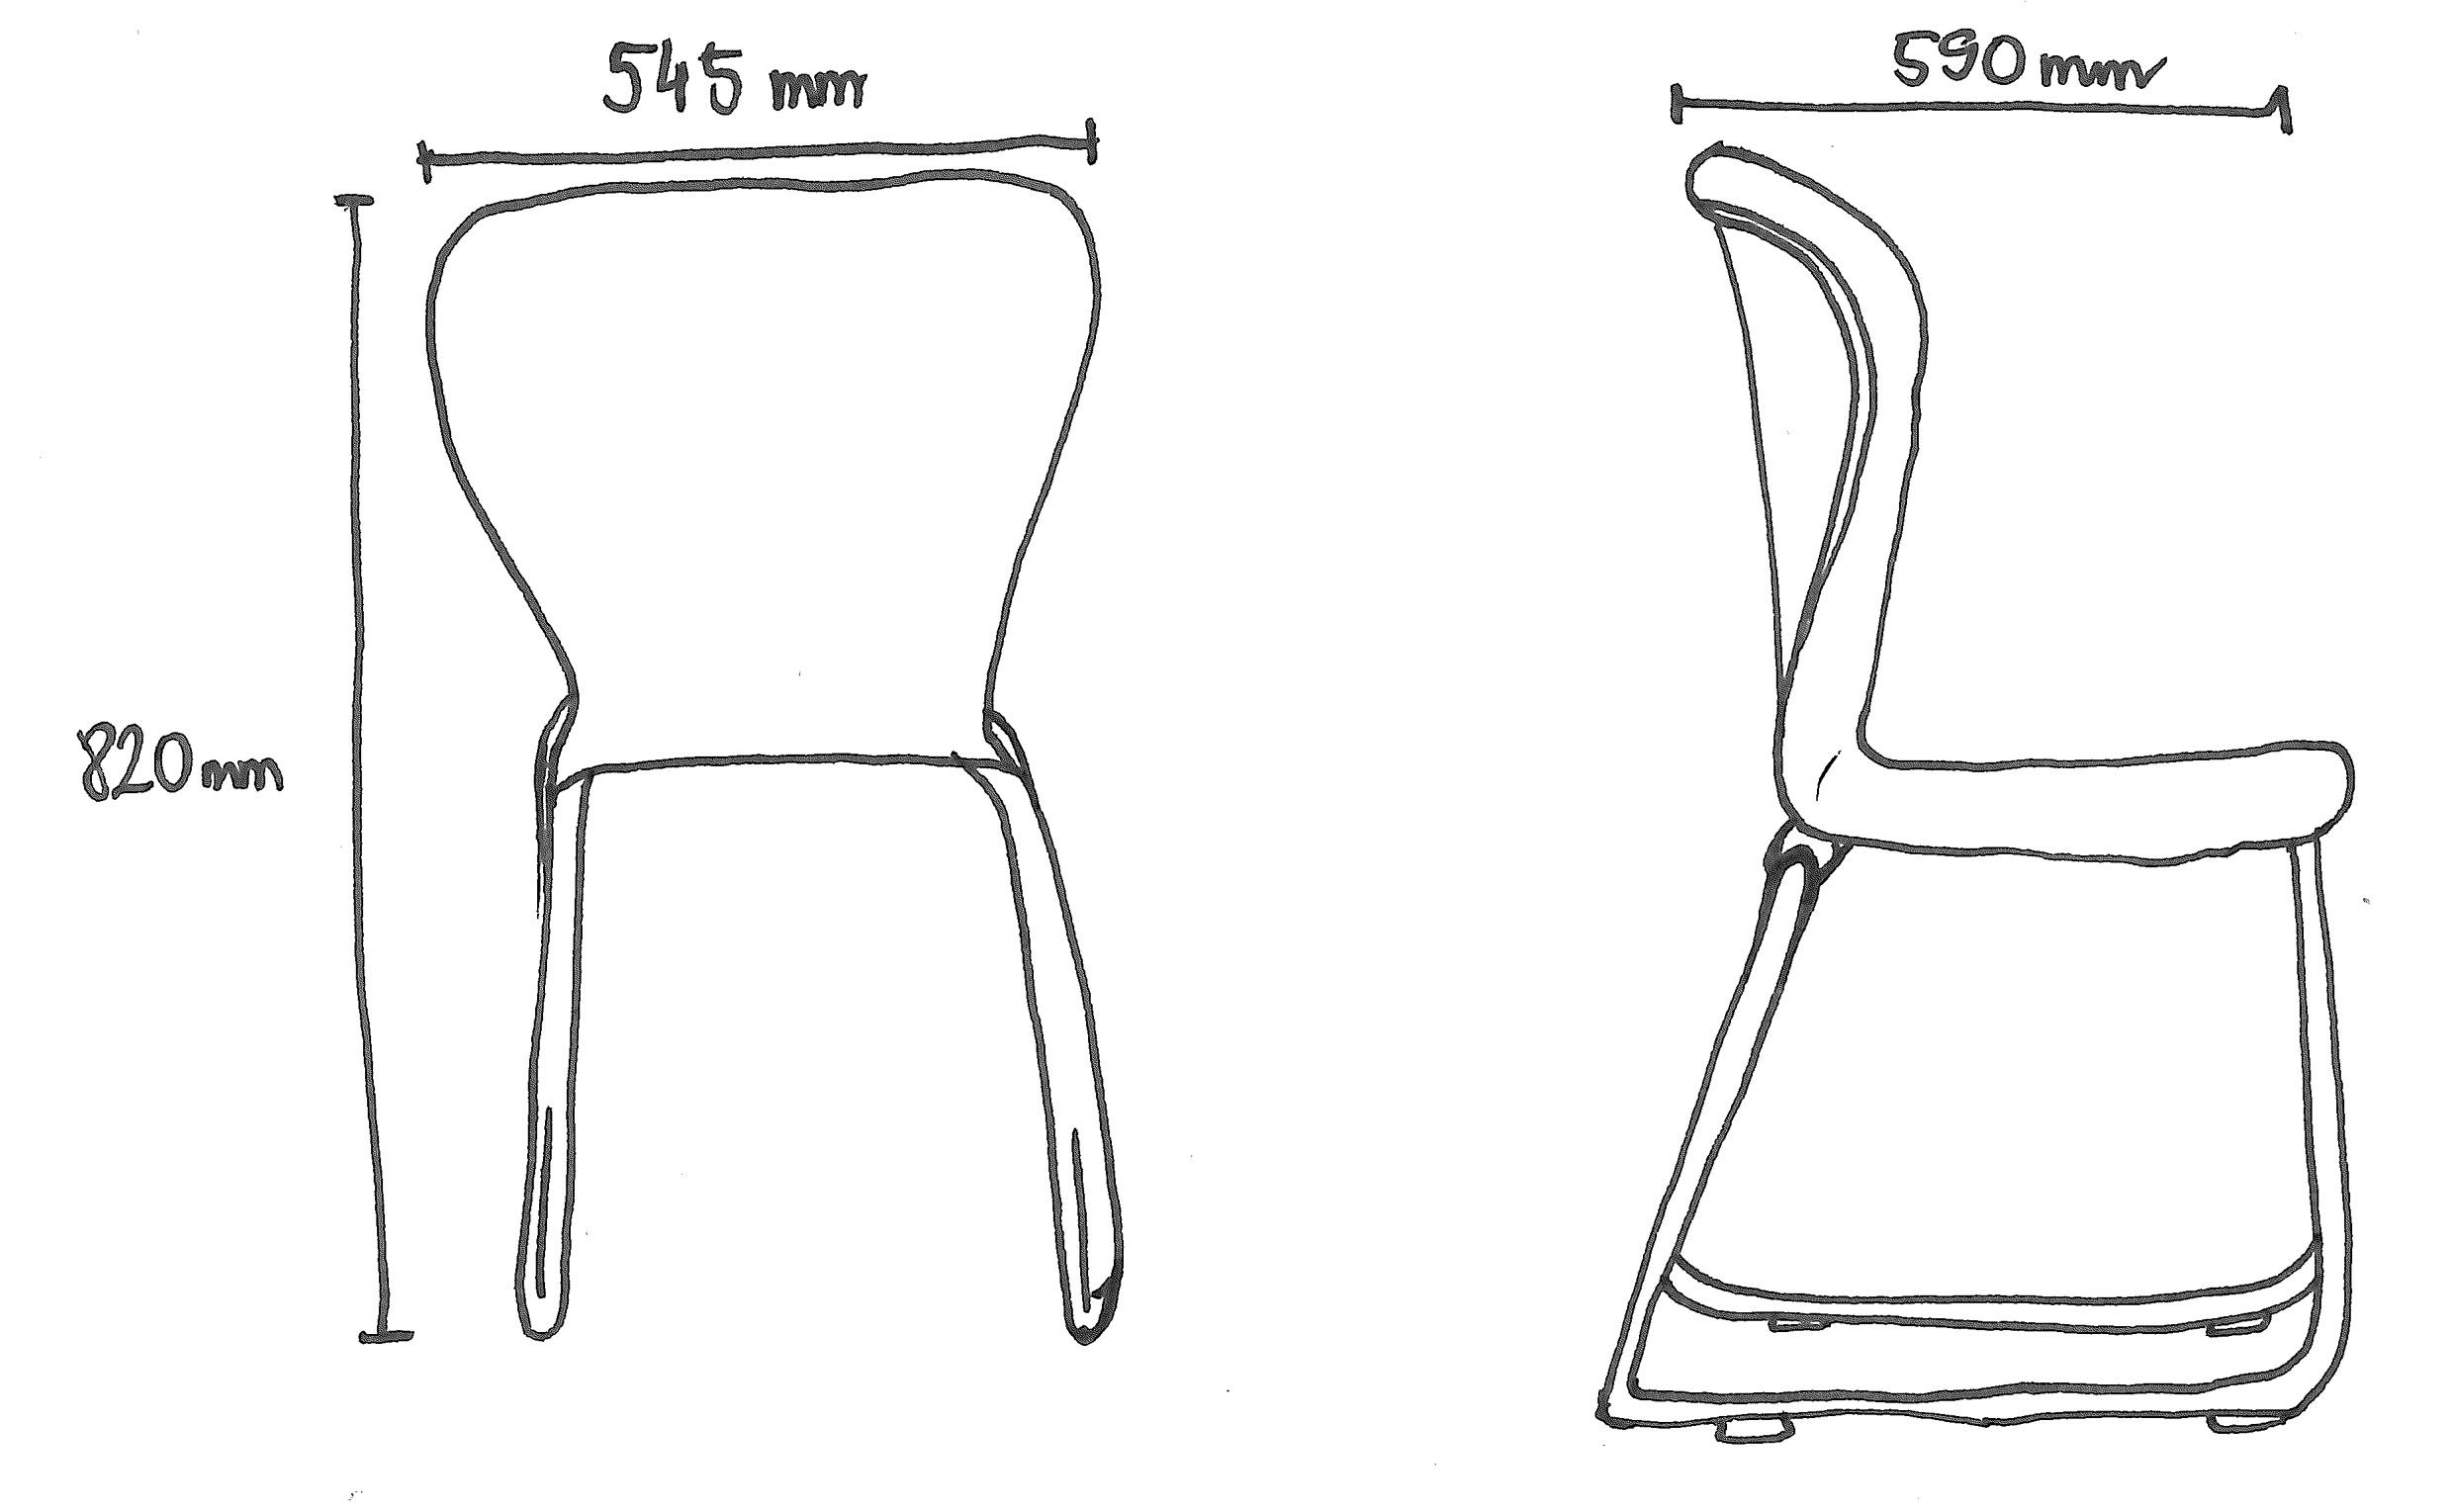 Chair Sketch With Measurements In Order To Assemble The Chair That Consists Of A Plastic Seat With Ergonomic Shape And A Me Metal Structure Ergonomics Chair